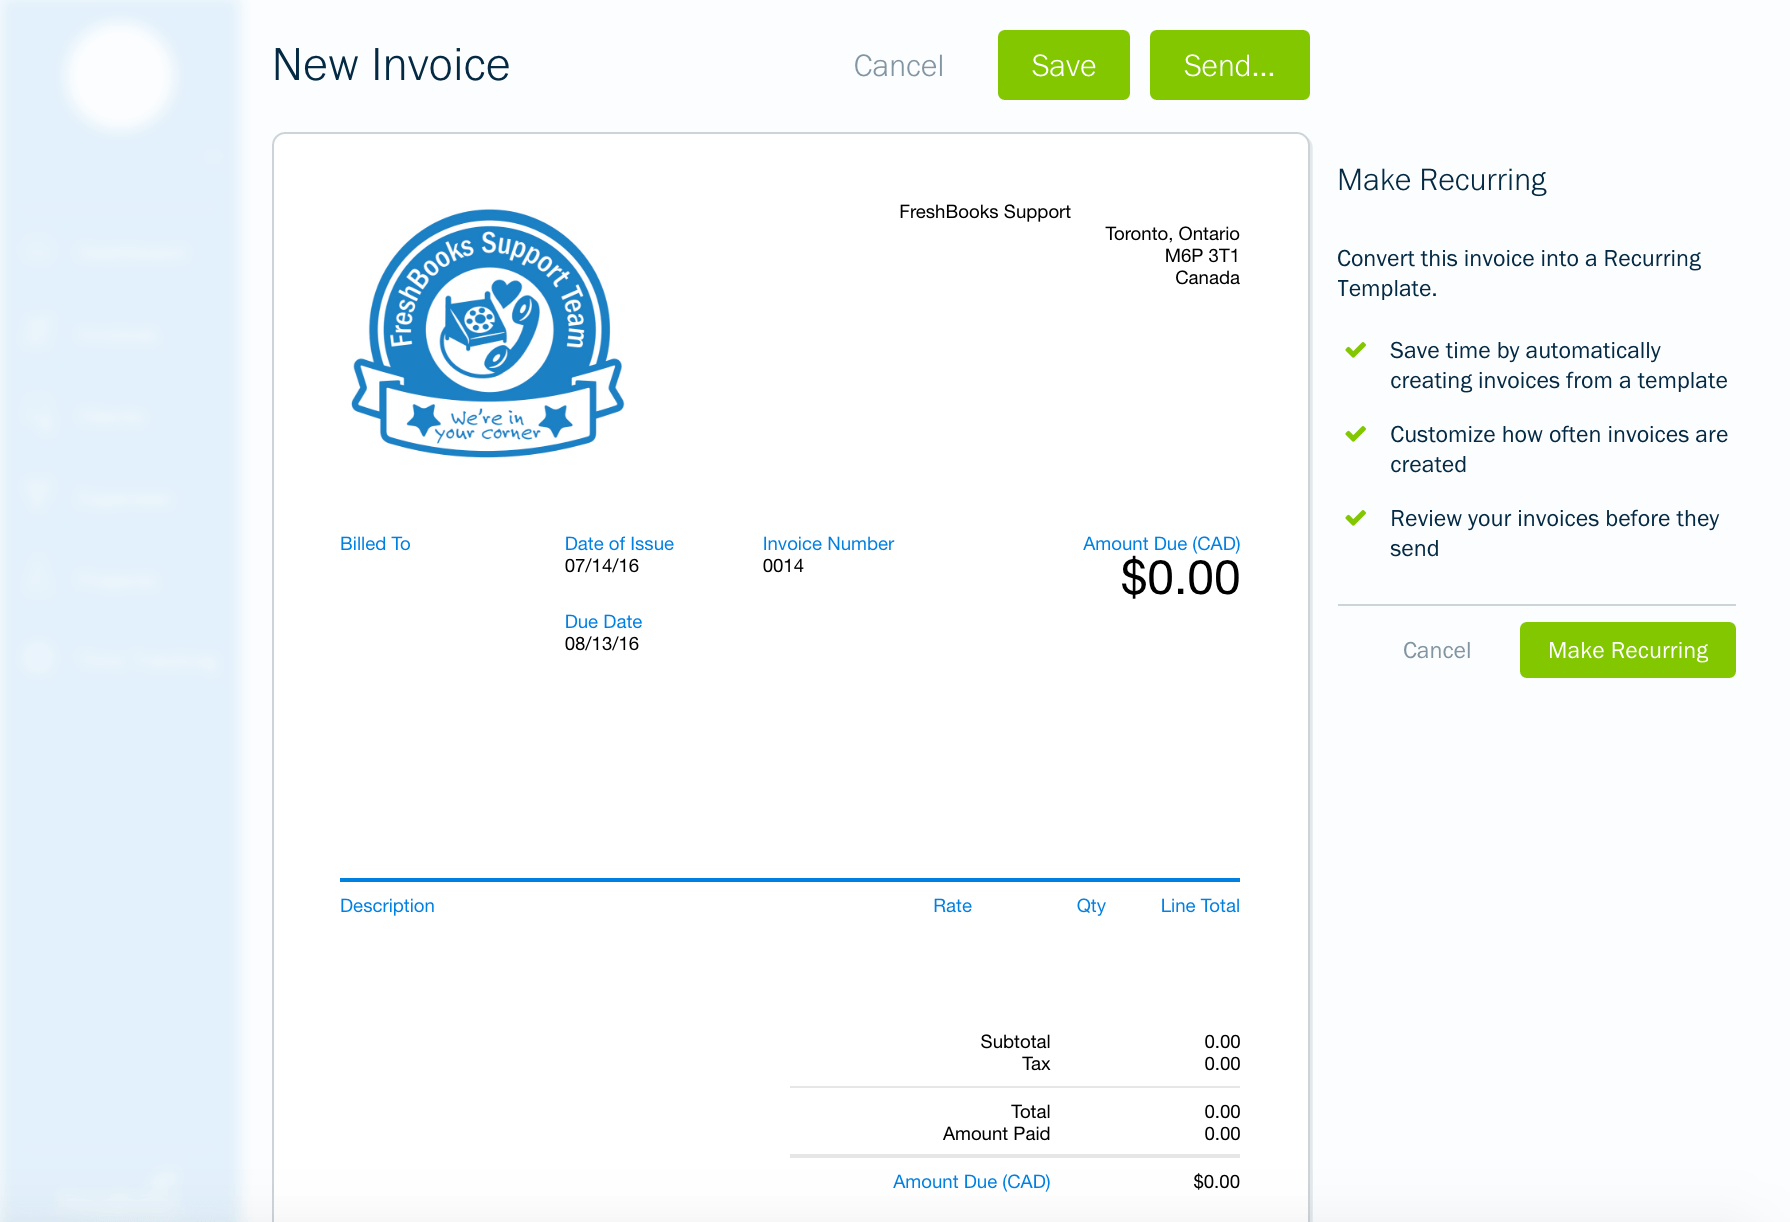 Billing And Invoicing Software   Freshbooks  Freshbooks Free Invoice